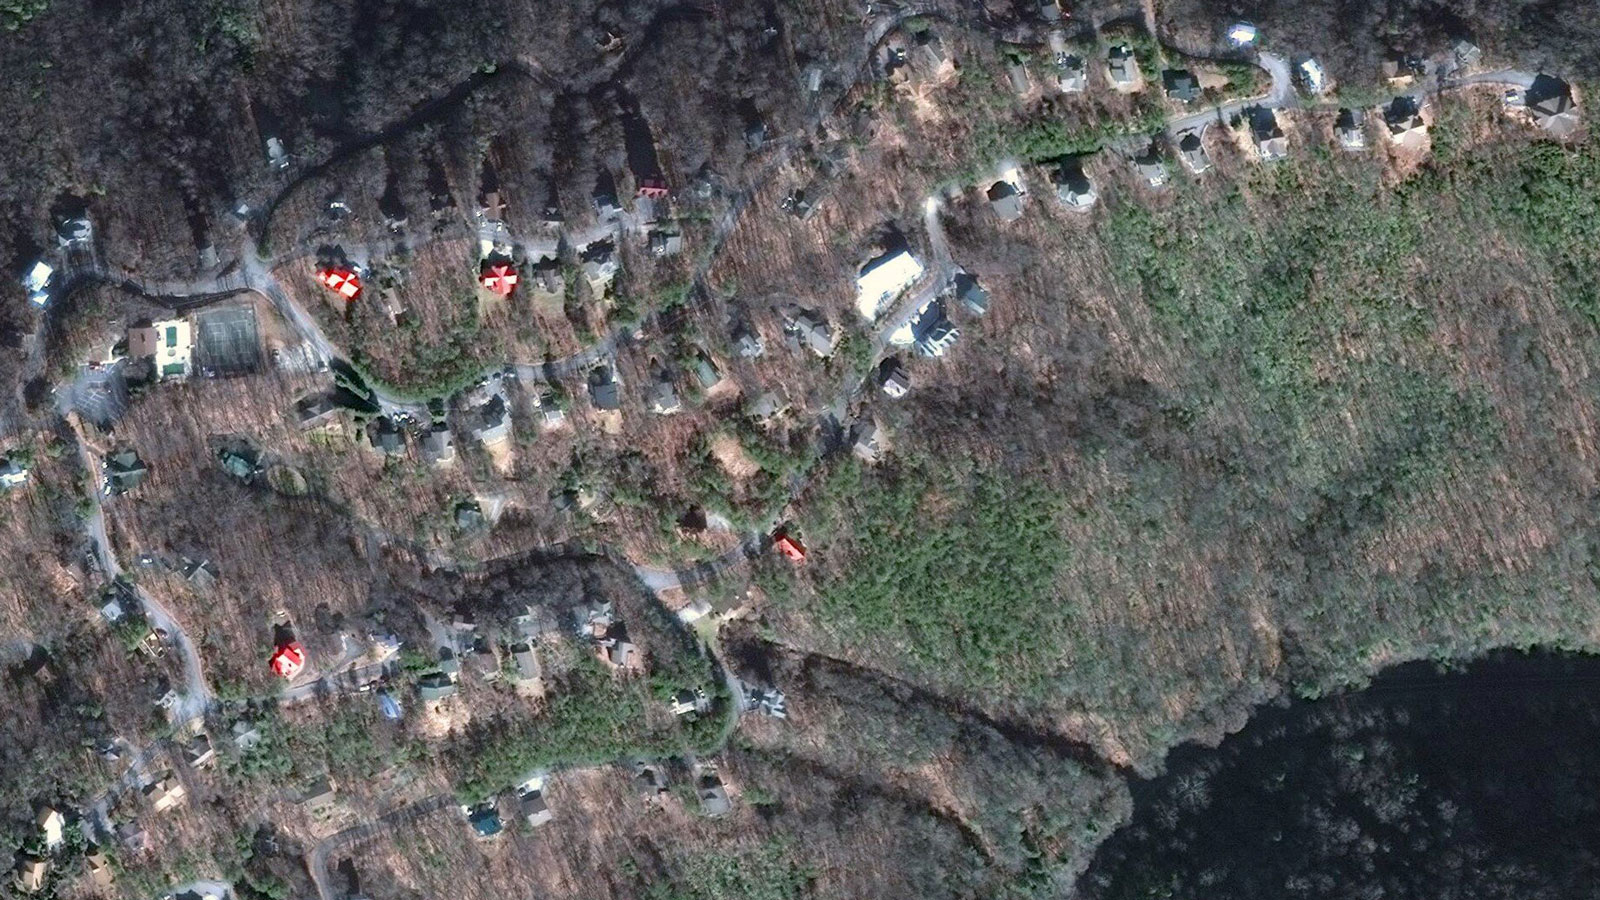 Gatlinburg Photos Before And After The Fire Cnn